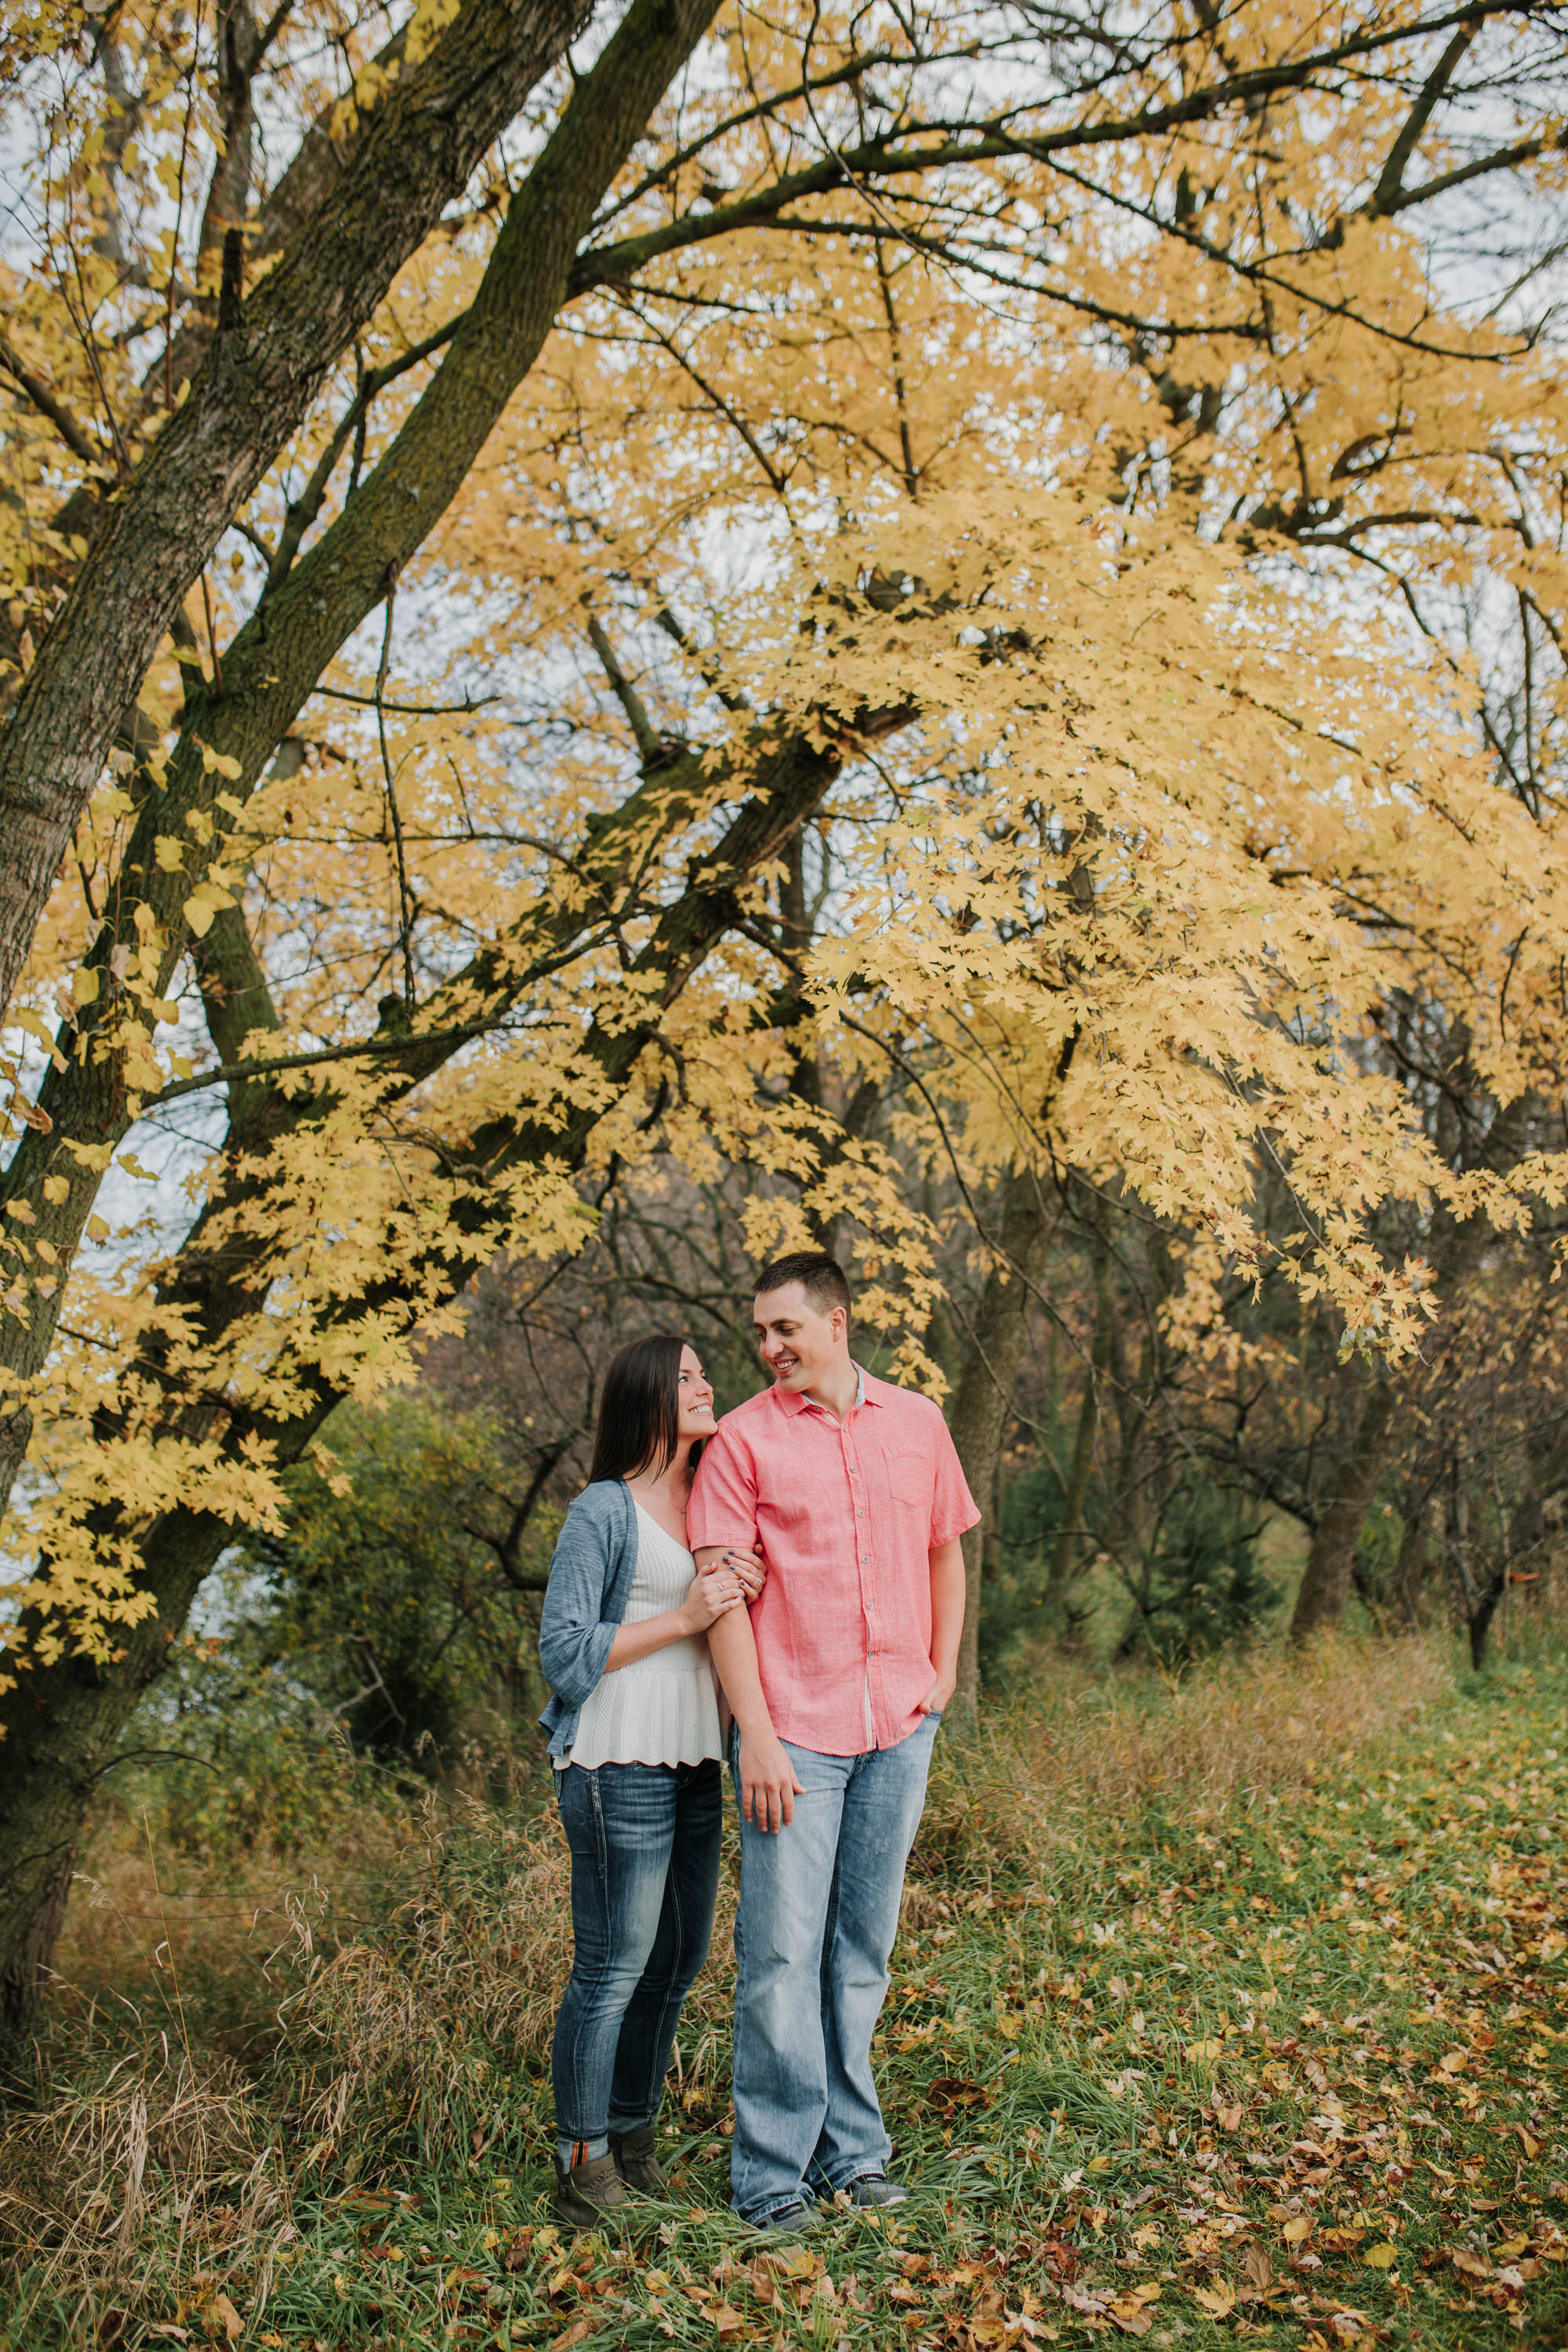 Hannah & Brett - Engaged - Nathaniel Jensen Photography - Omaha Nebraska Wedding Photograper - Omaha Nebraska Engagement Session - Chalco Hills Engagement Session-36.jpg